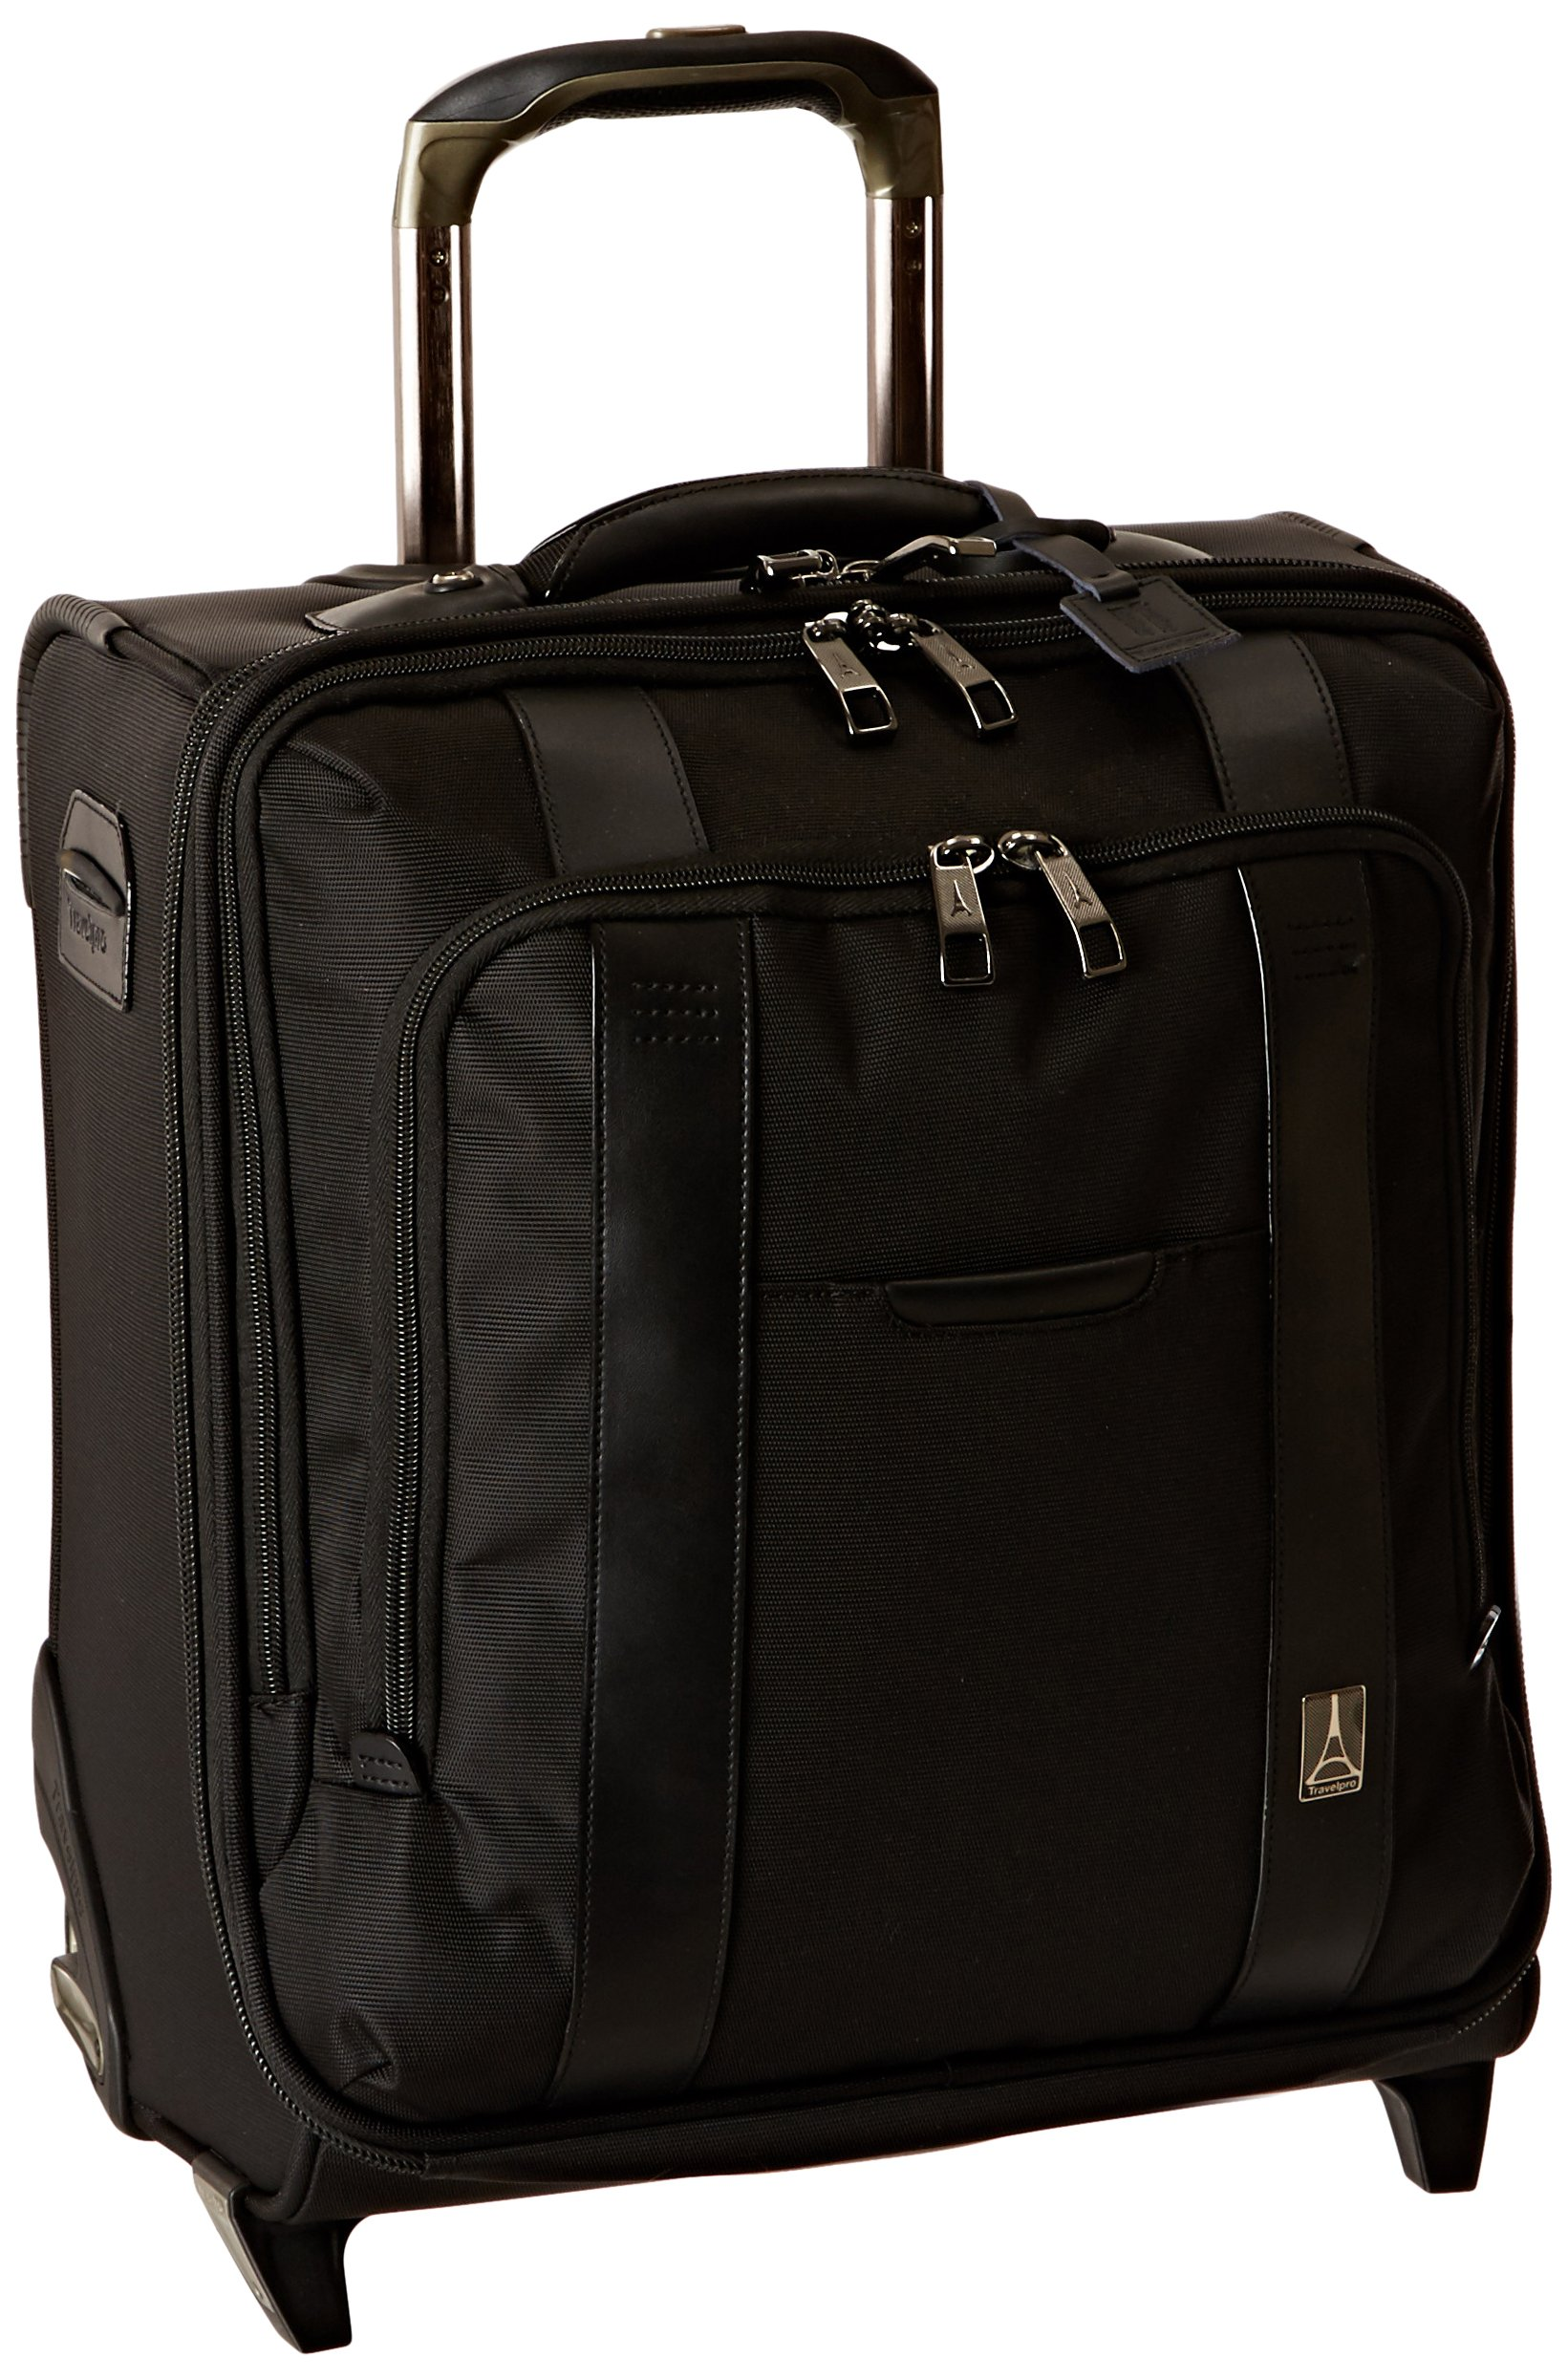 Travelpro Executive Choice Crew 16 Inch Rolling Business Brief, Black, One Size by Travelpro (Image #1)